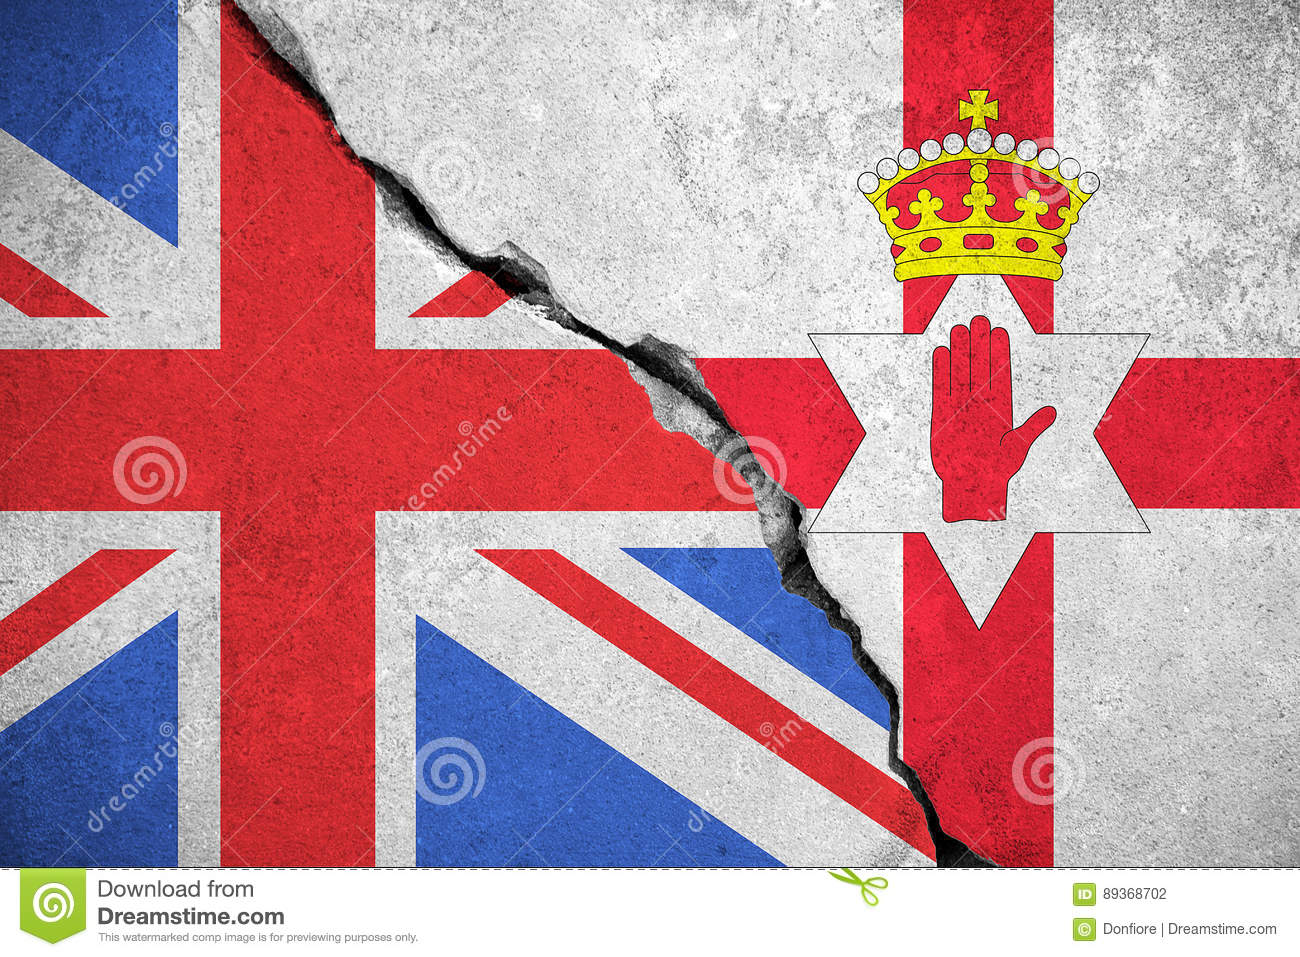 north ireland flag on broken wall and half great britain flag